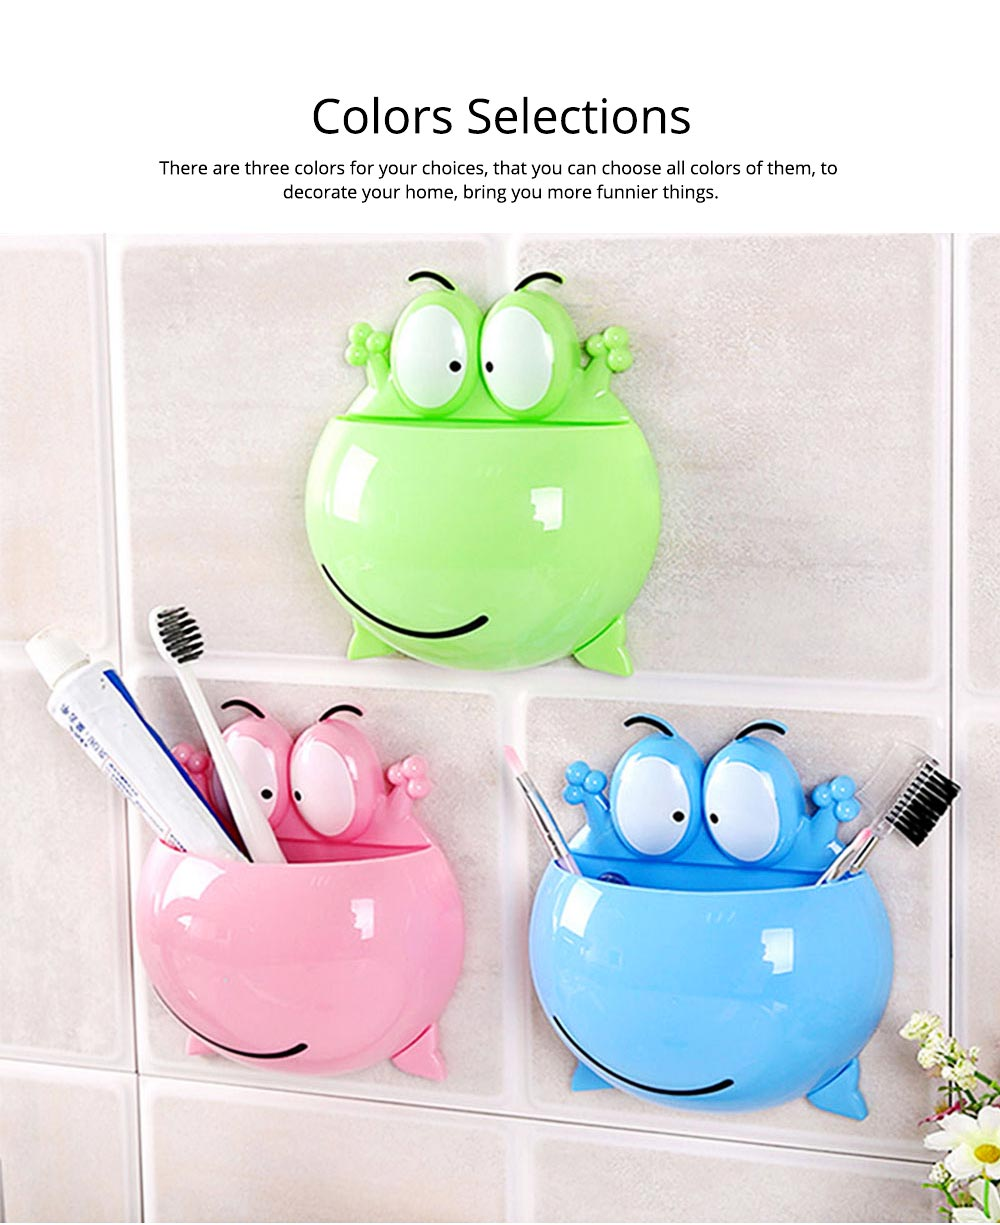 PP Wall-mounted Toothpaste Container, Toothbrush Holder Frog-modern for Bathroom Kitchen 8